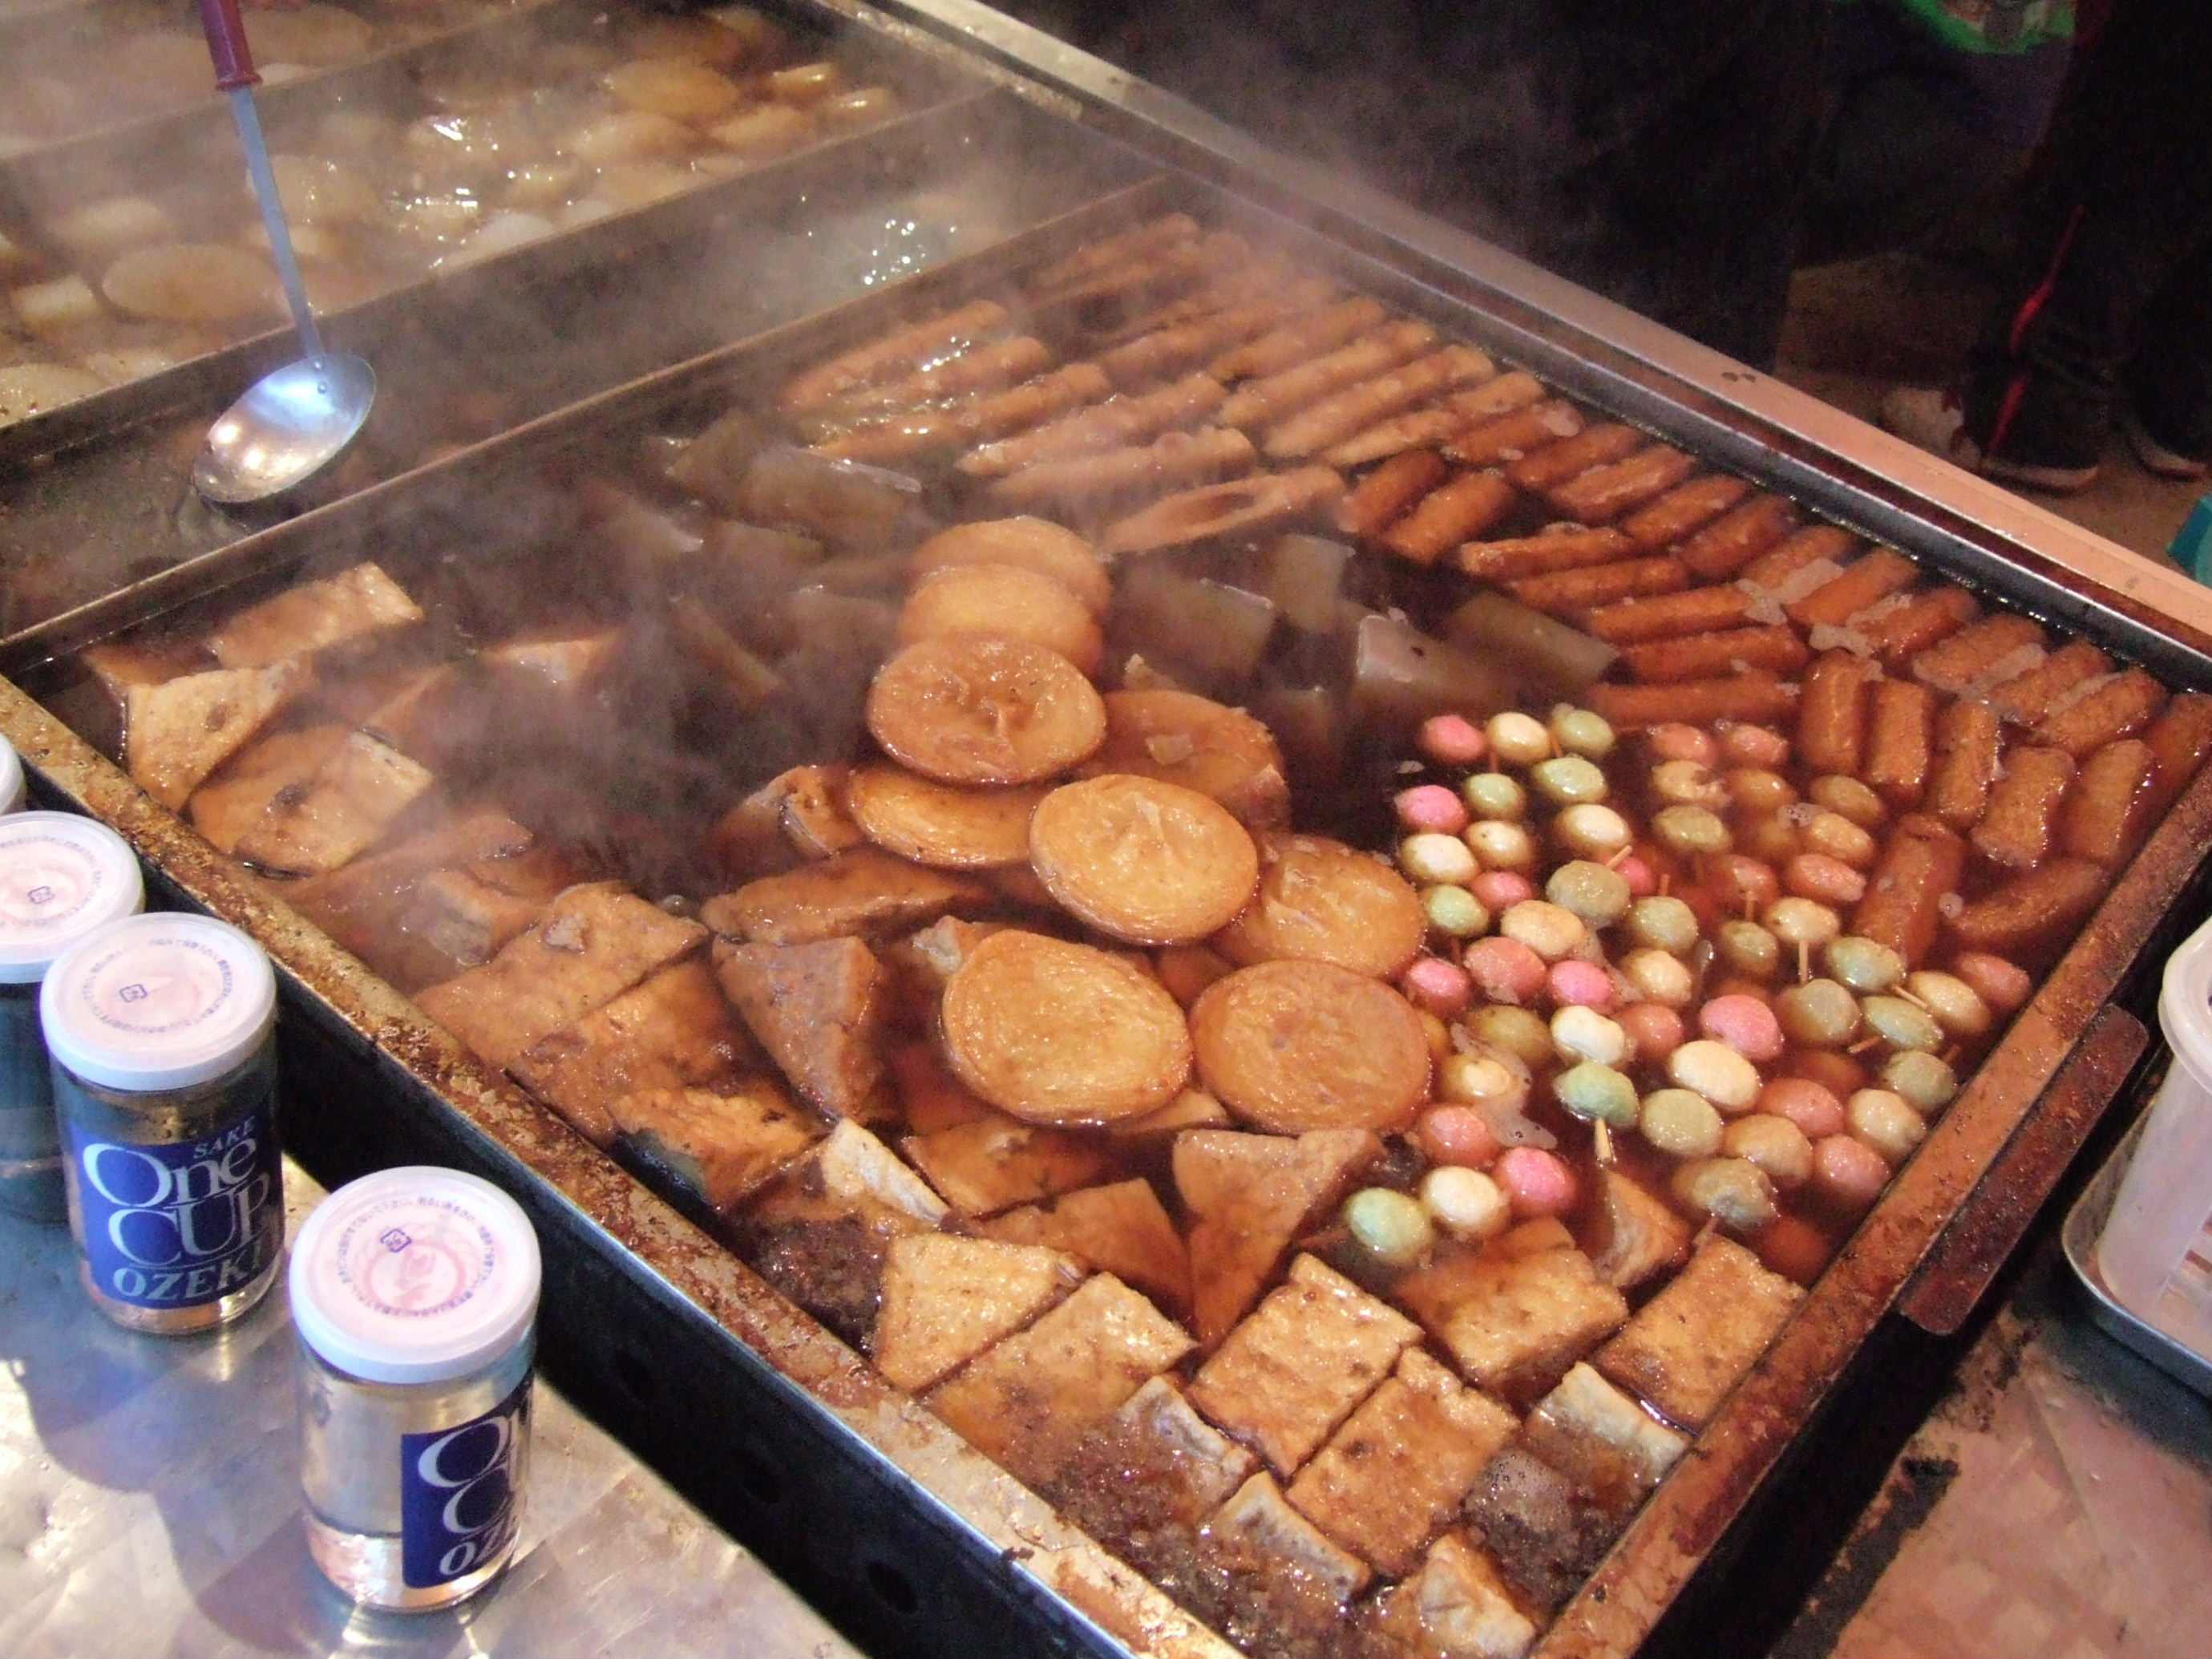 File:Yatai no oden.JPG - Wikimedia Commons